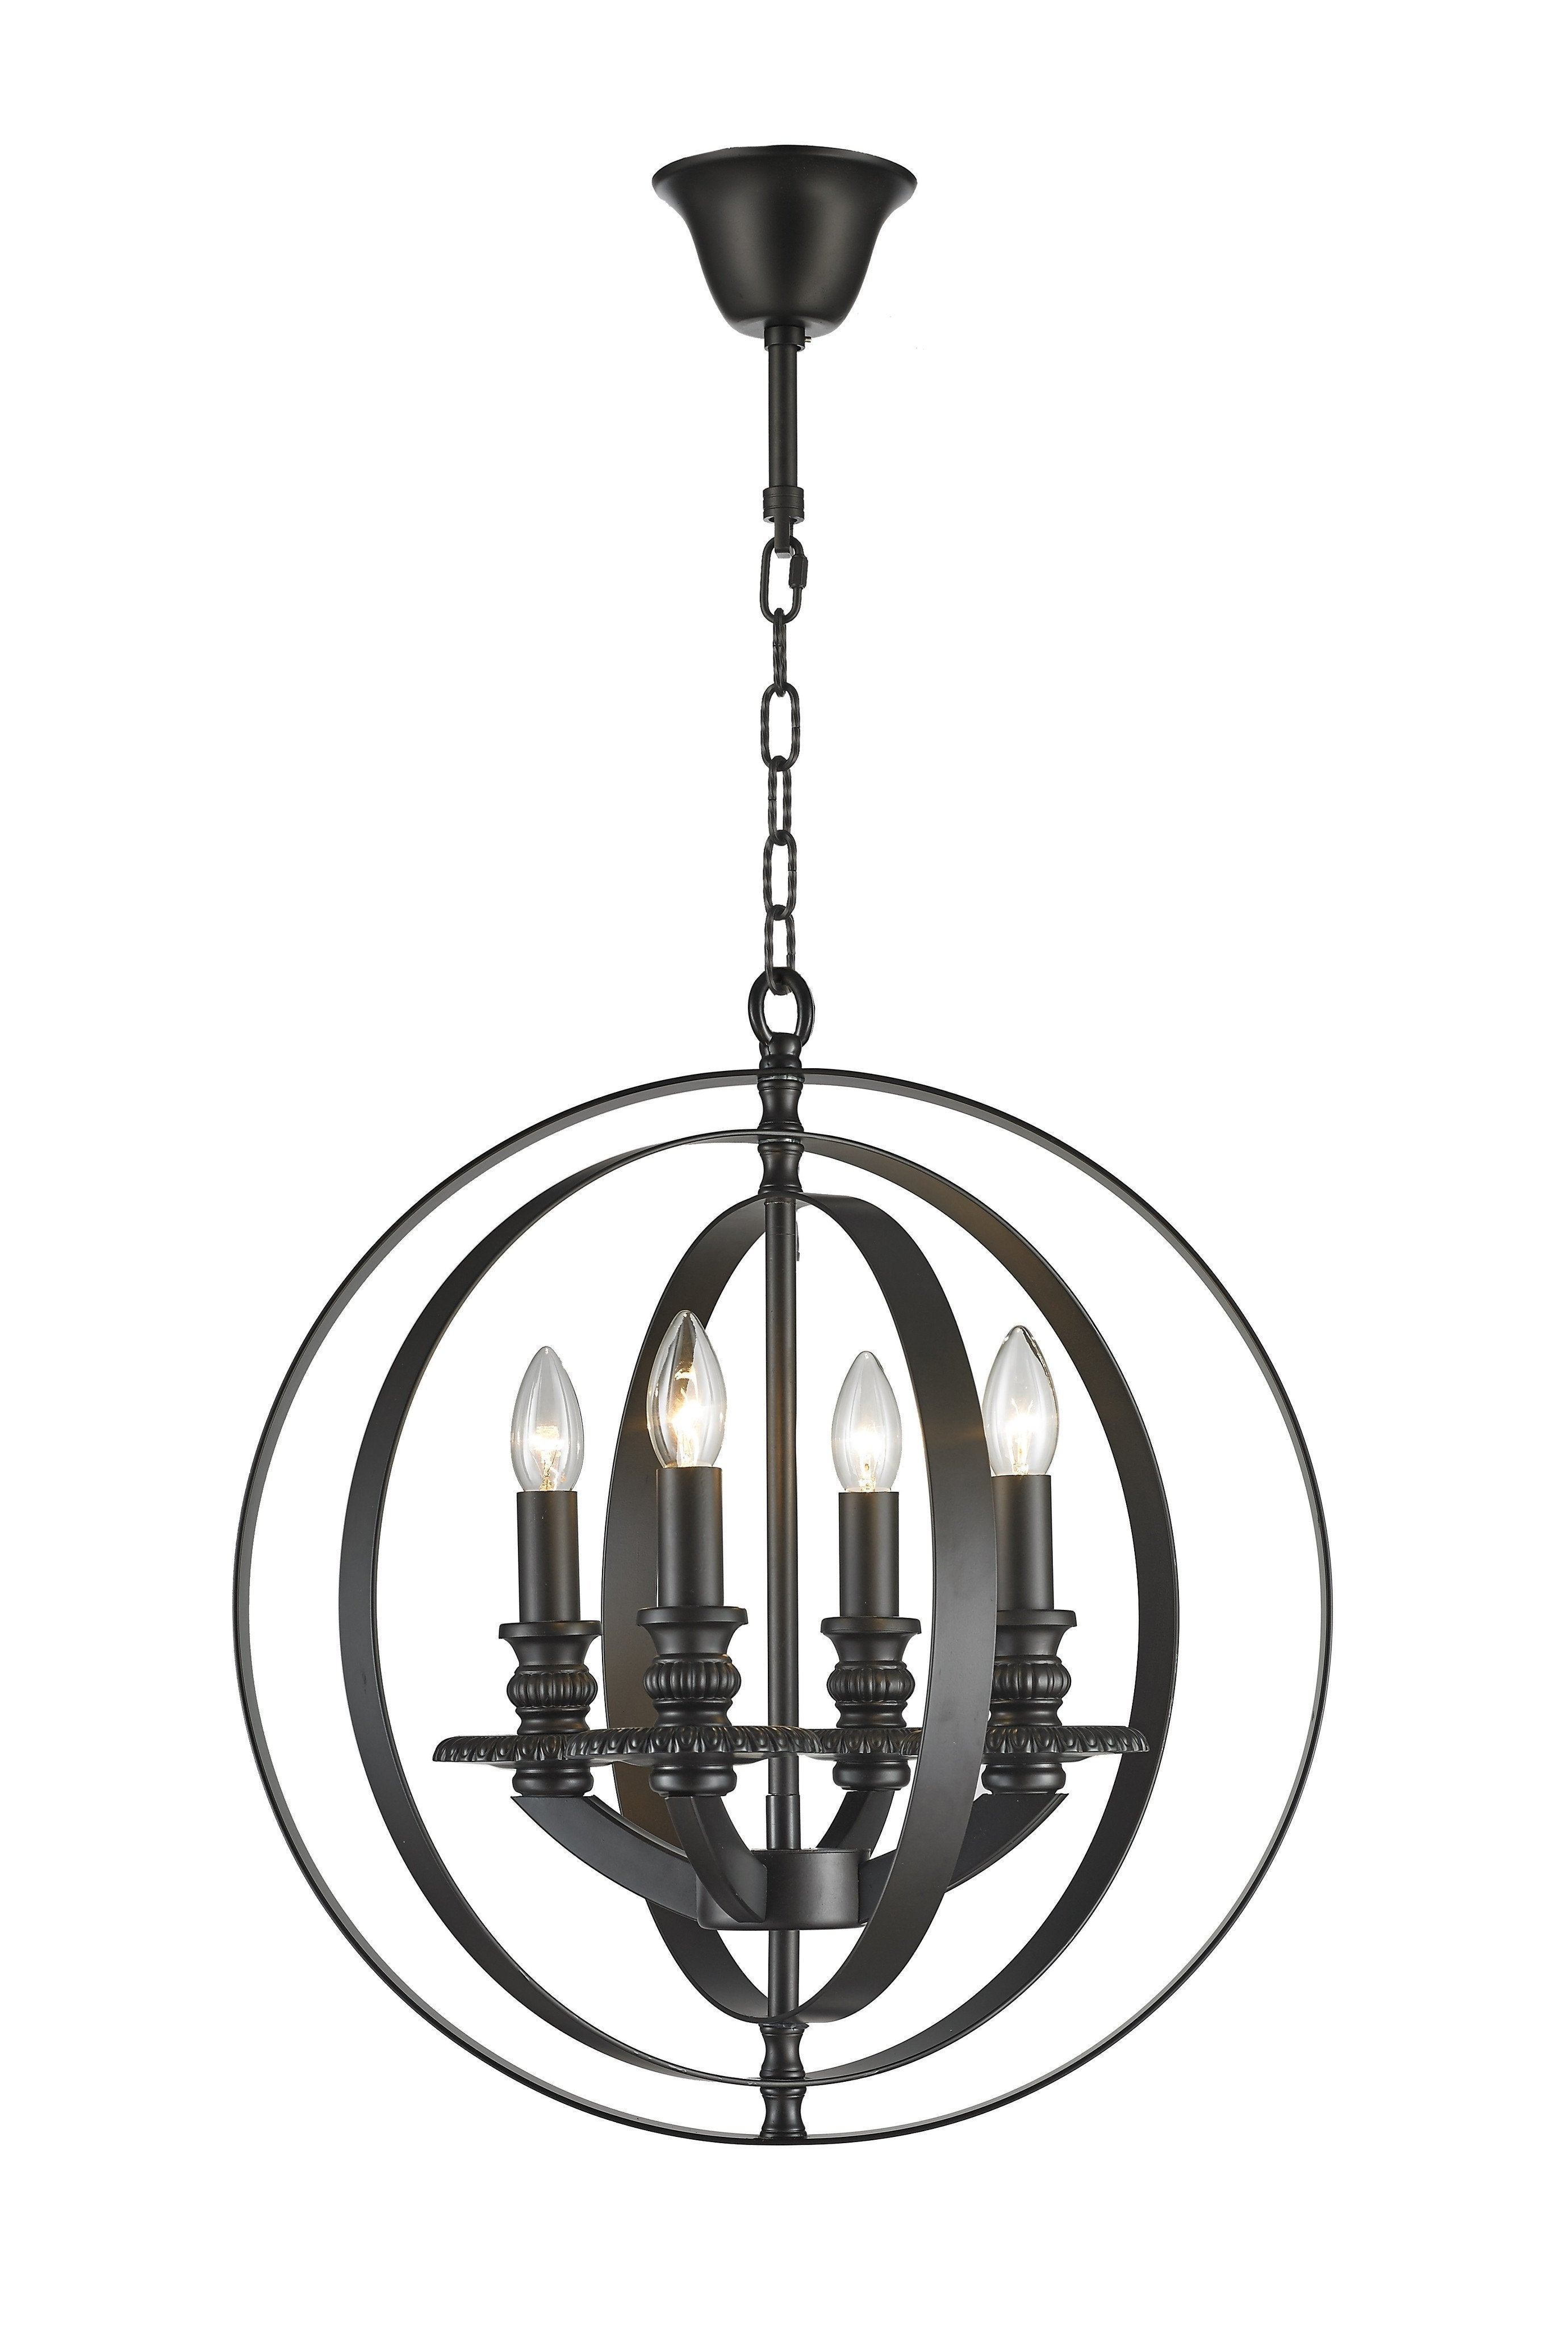 wonderfully chandeliers orb chandelier diy orbchandelier made